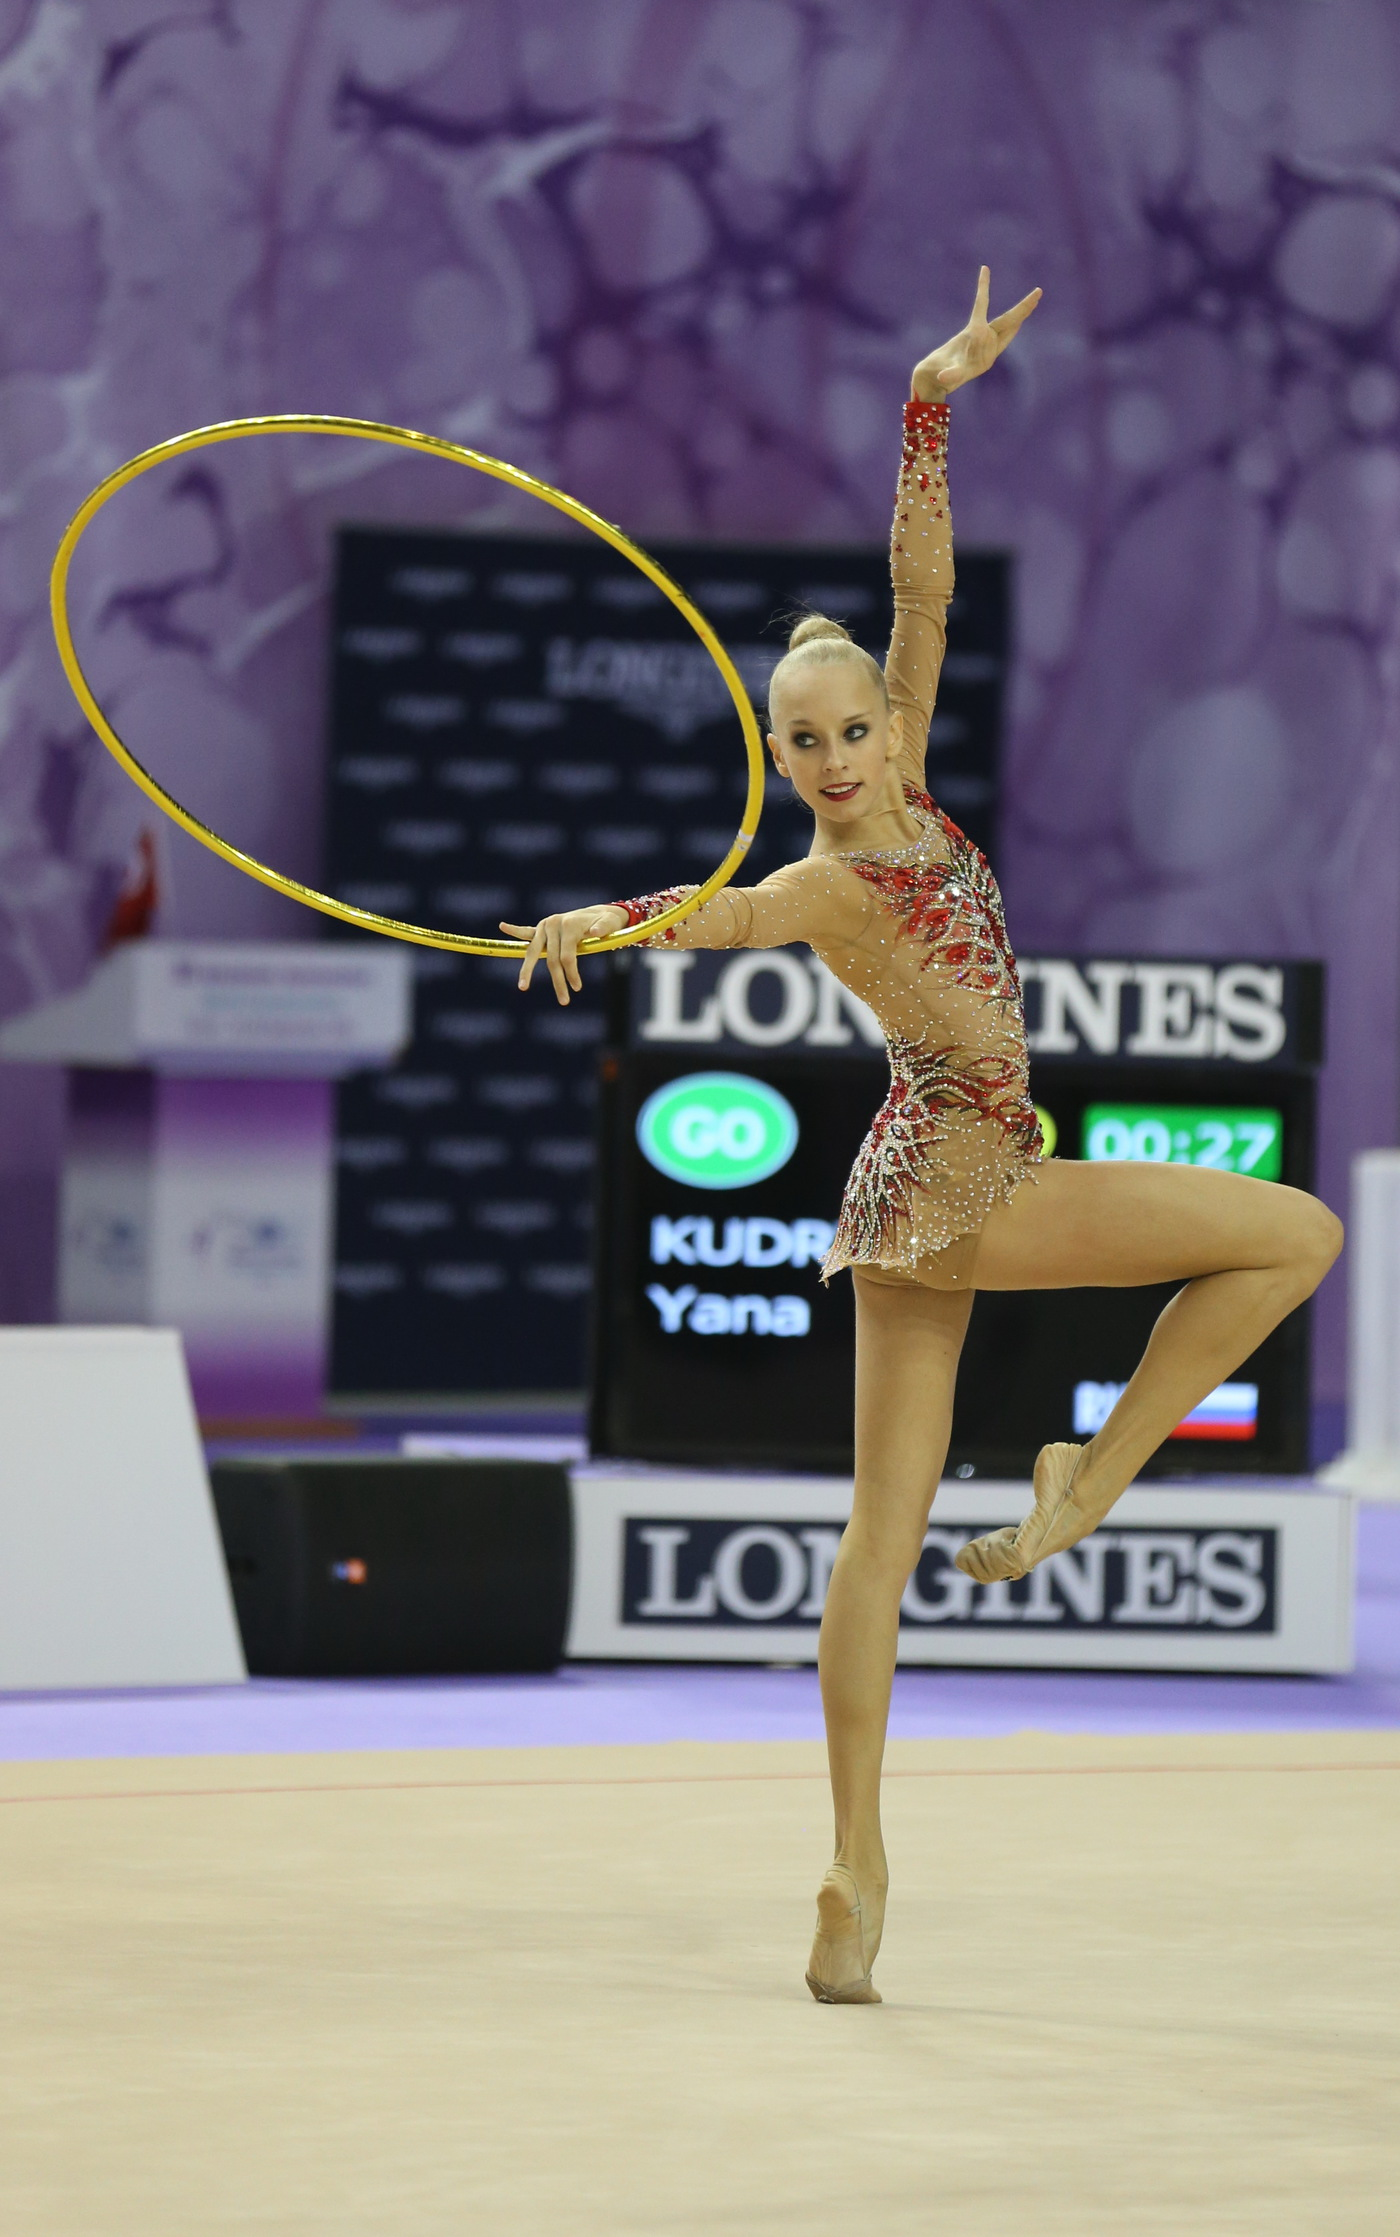 Longines Gymnastics Event: The Longines Prize for Elegance awarded to Yana Kudryavtseva at the 33rd Rhythmic Gymnastics World Championships 2014 in Izmir 7